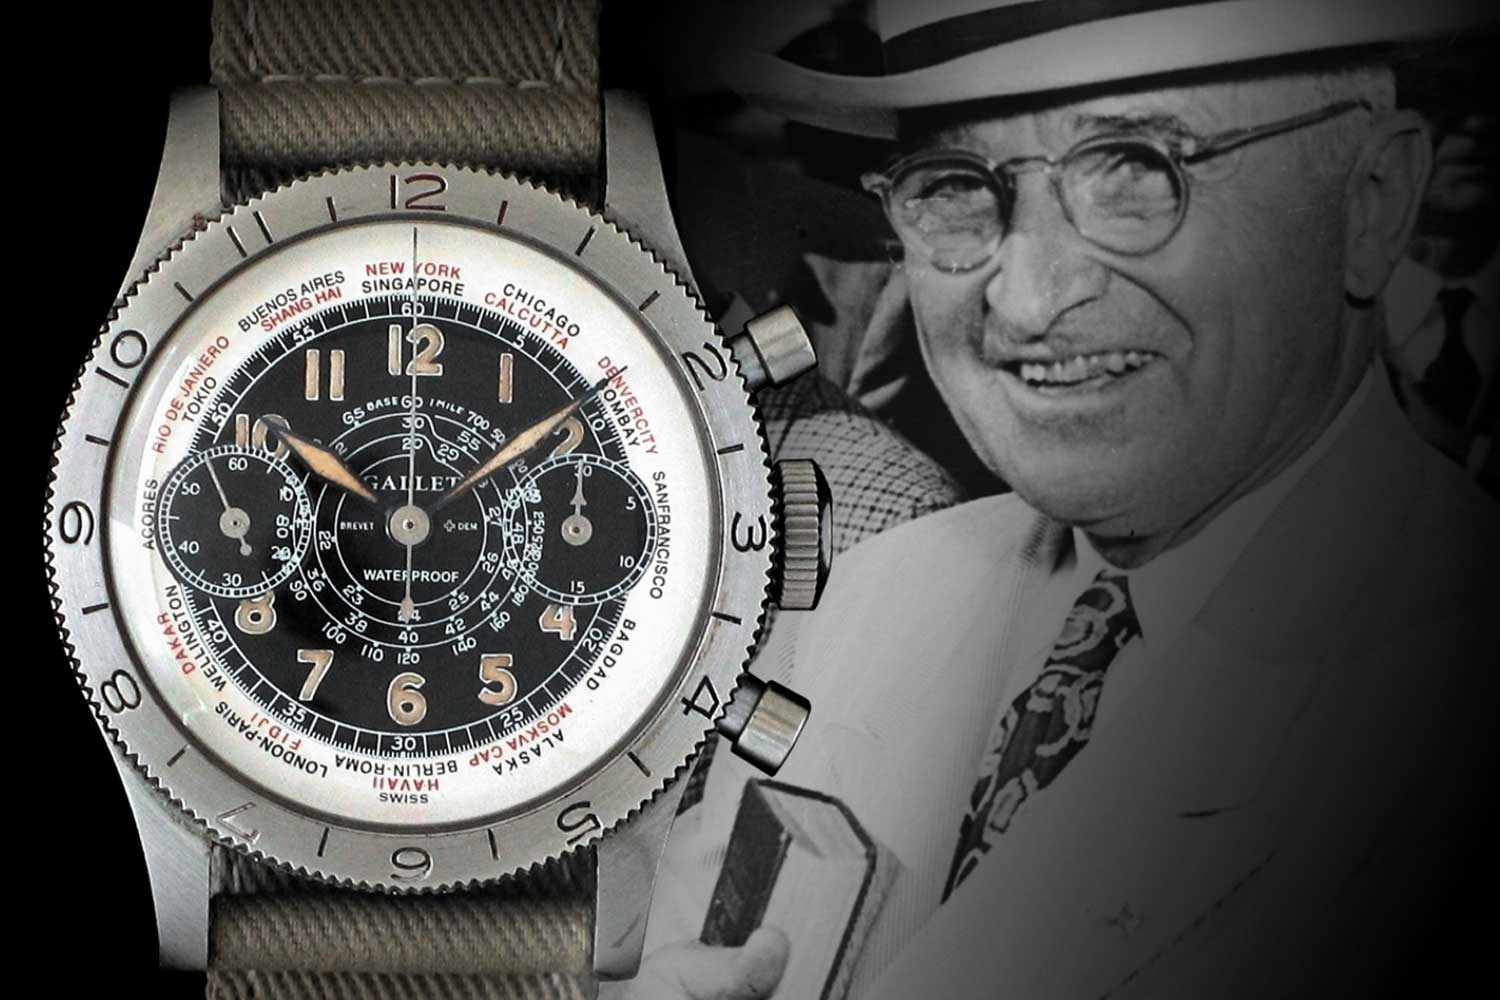 Harry Truman and his Gallet Flying Officer